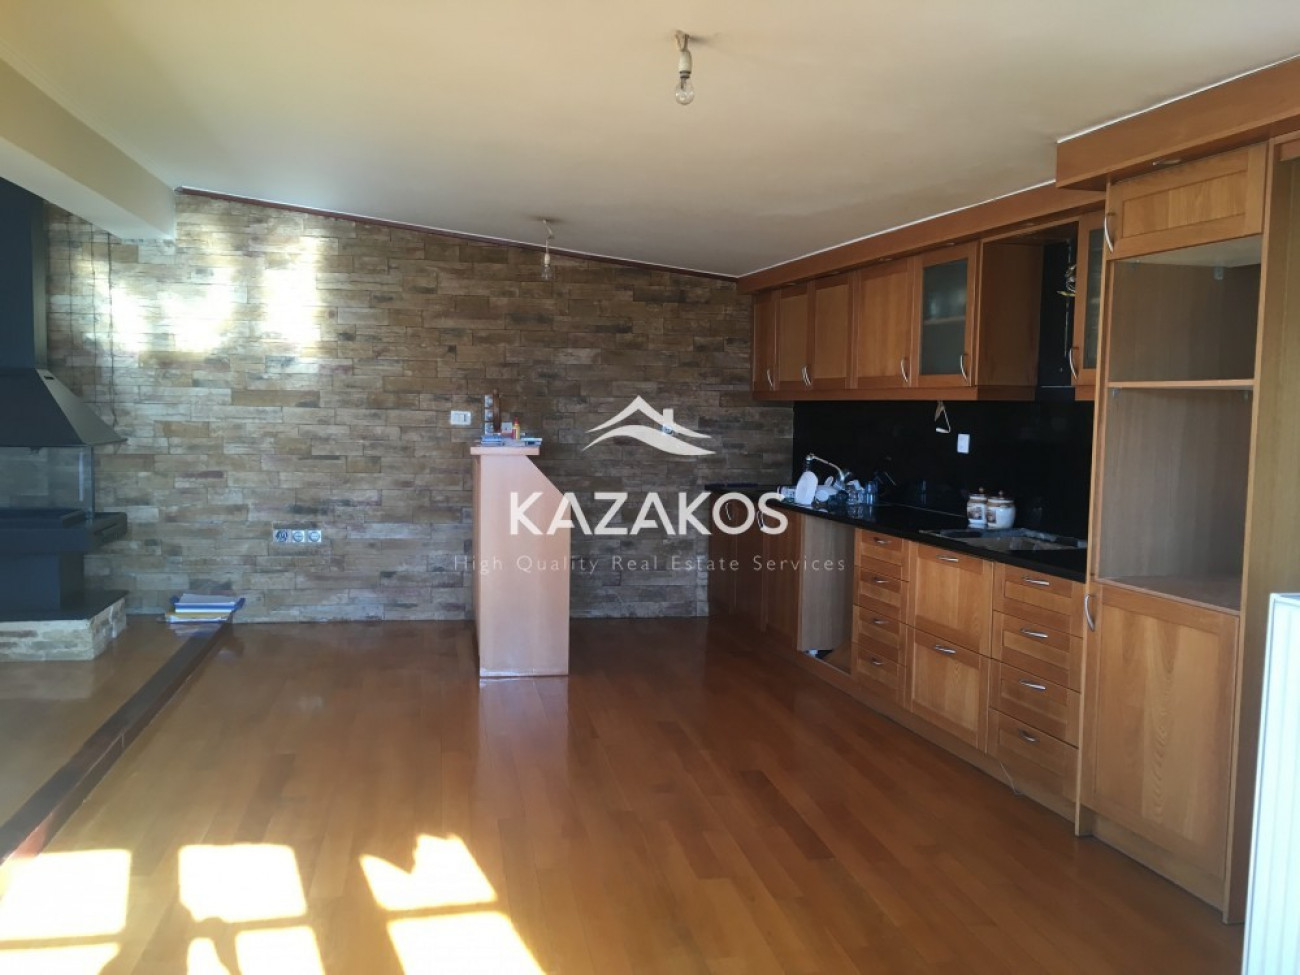 Maisonette for Sale in Palaio Phaliro, Central & South Region of Athens, Greece